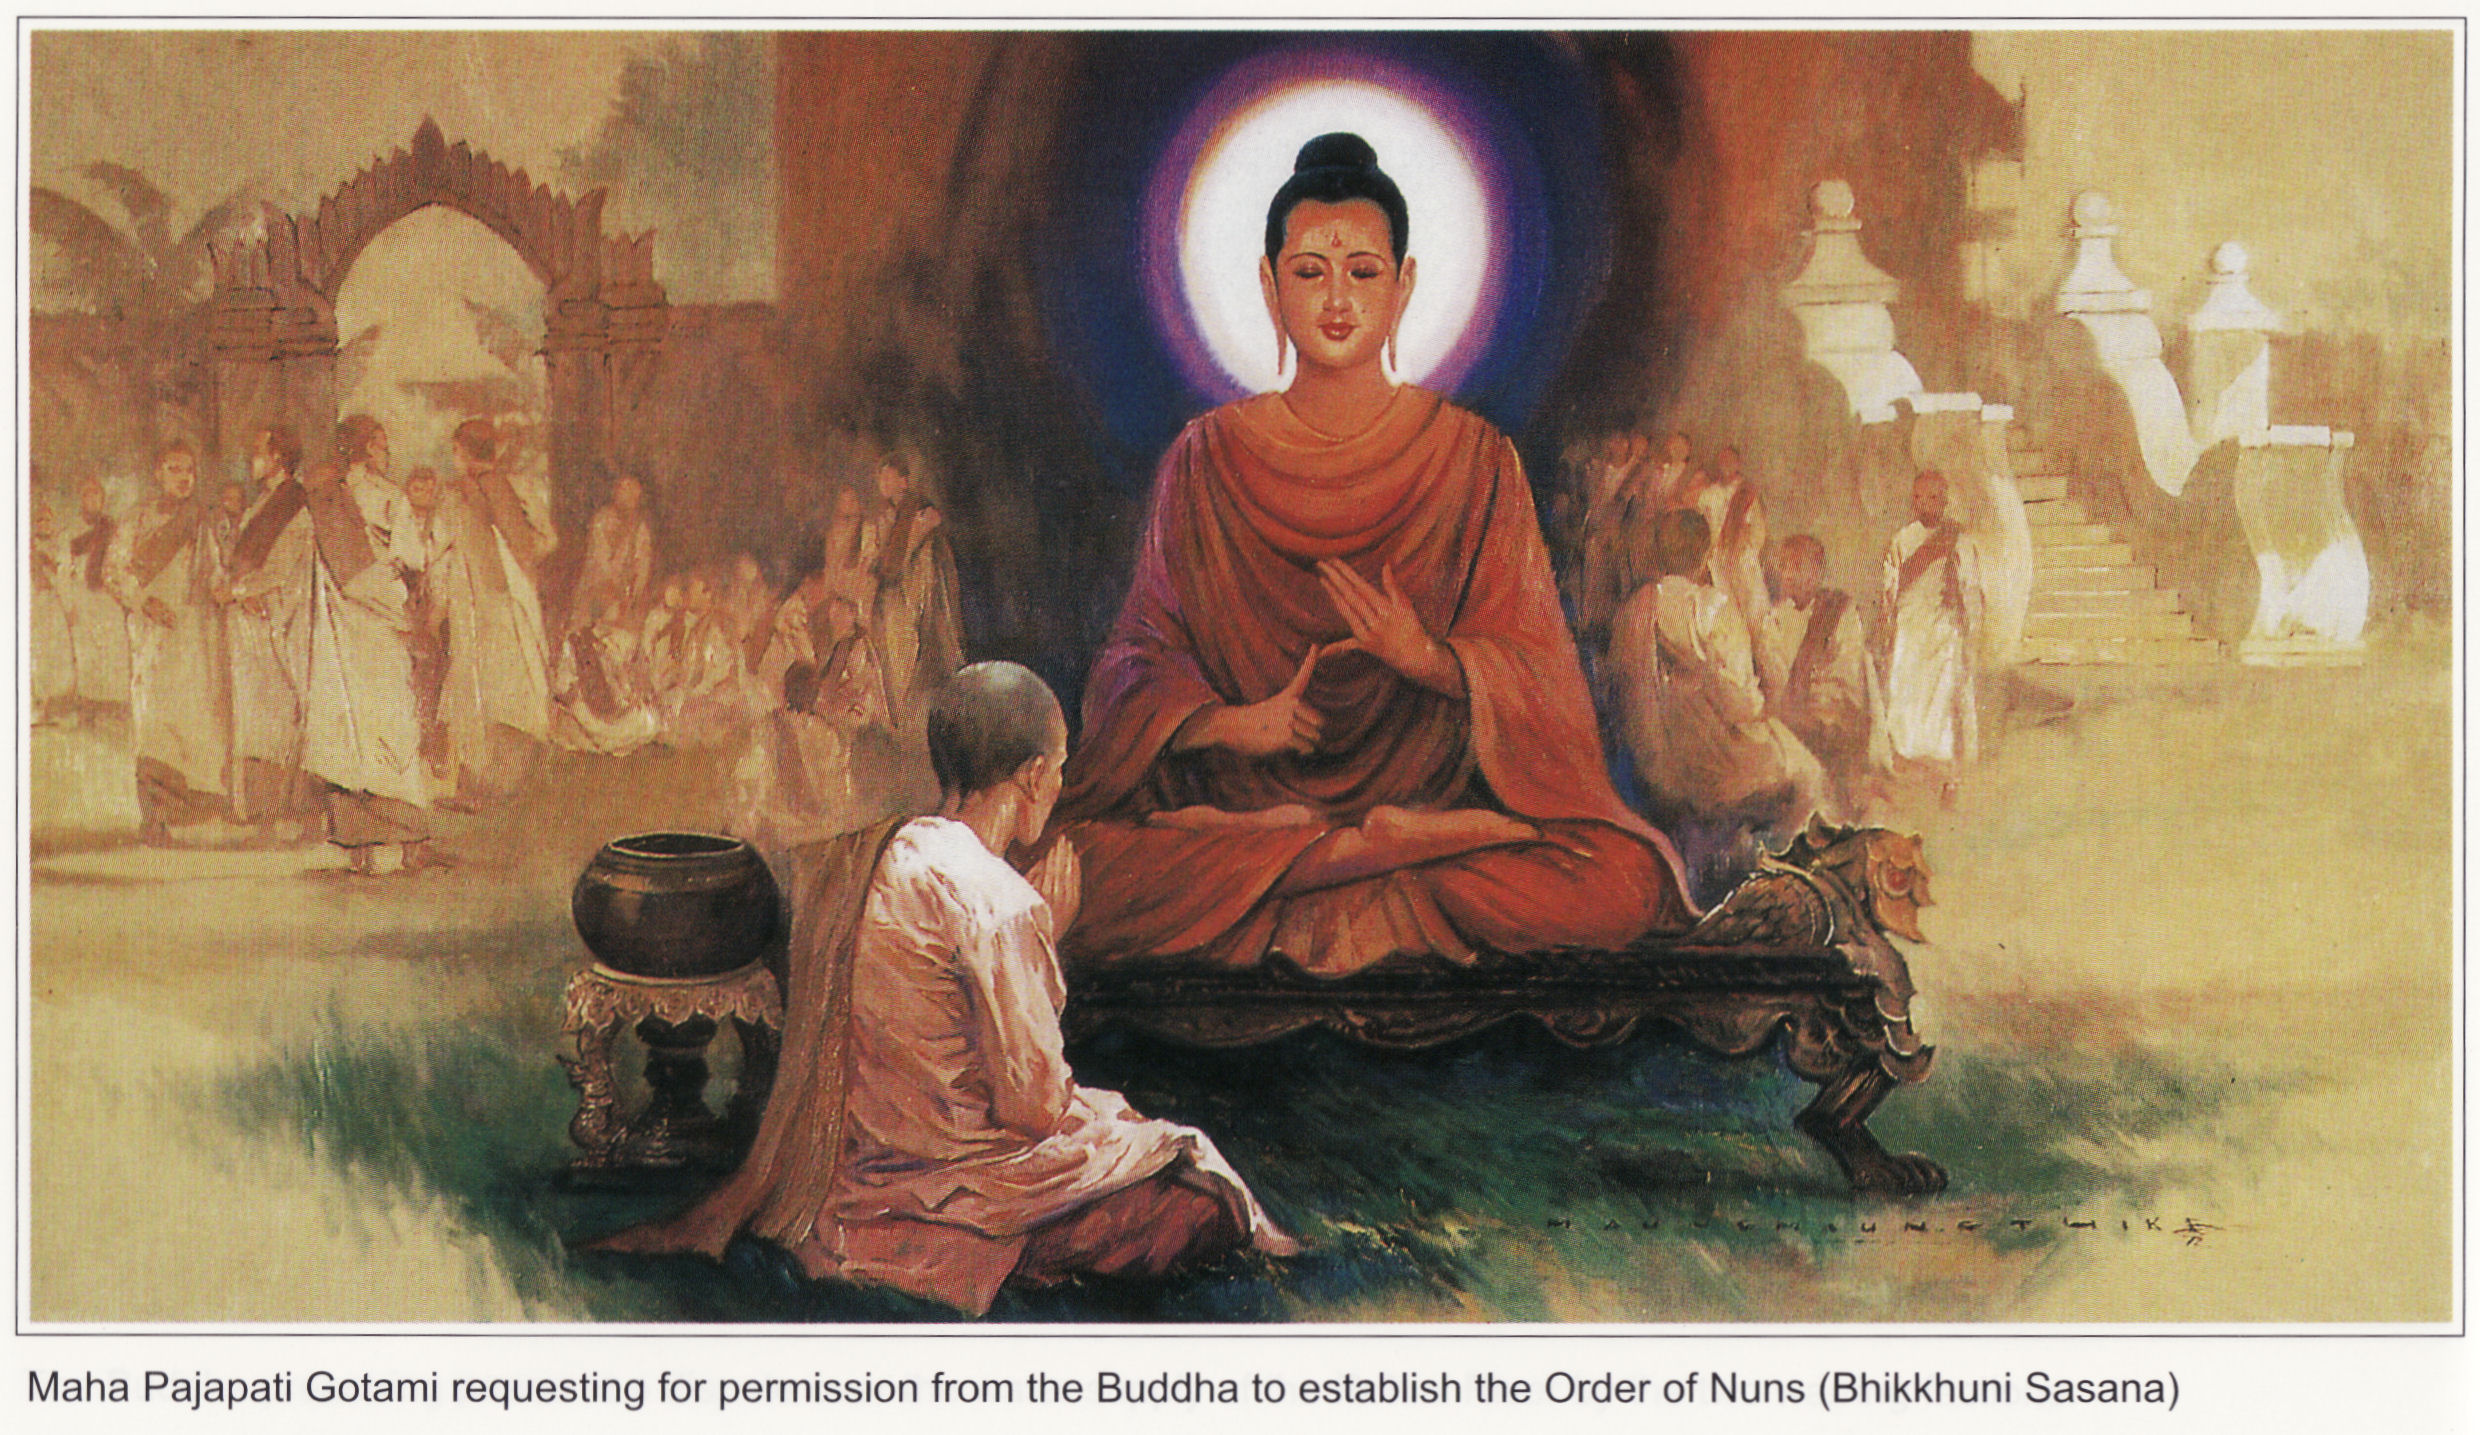 a biography of siddharta gautama the founder of buddhism Prince siddhartha sees 'four sights' that will help him find the meaning of life.